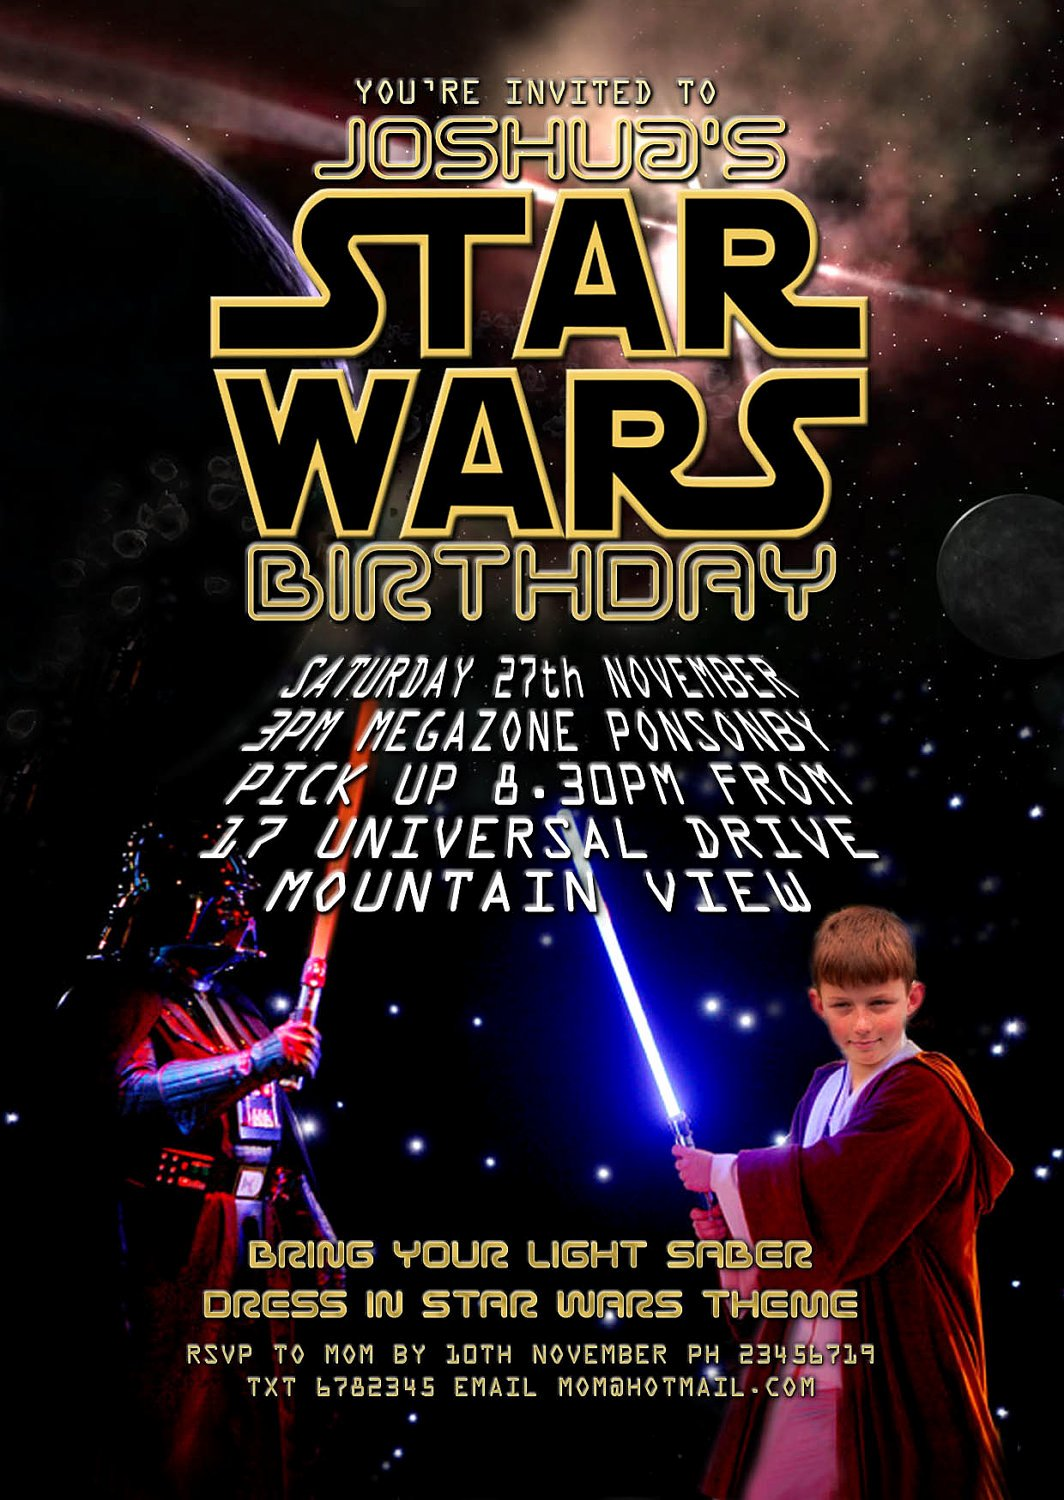 Star Wars Birthday Party Invitation Elegant Lighting